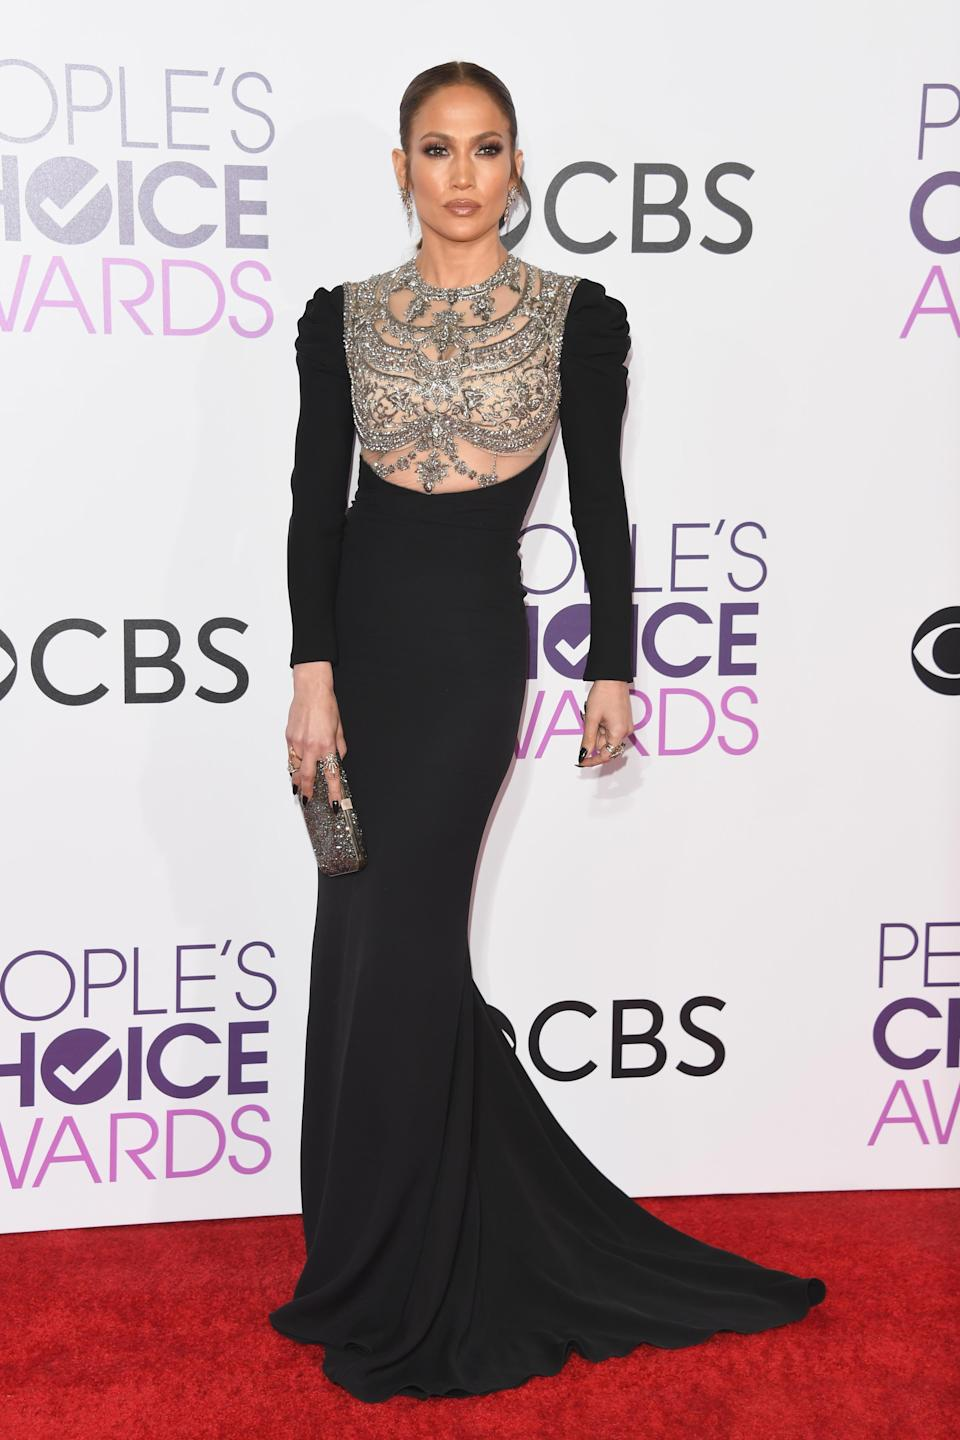 <p>The night J.Lo won her first People's Choice Award for her role in crime drama 'Shades of Blue.' The evening was especially memorable thanks to this bedazzled Reem Arca gown. [Photo: Getty] </p>